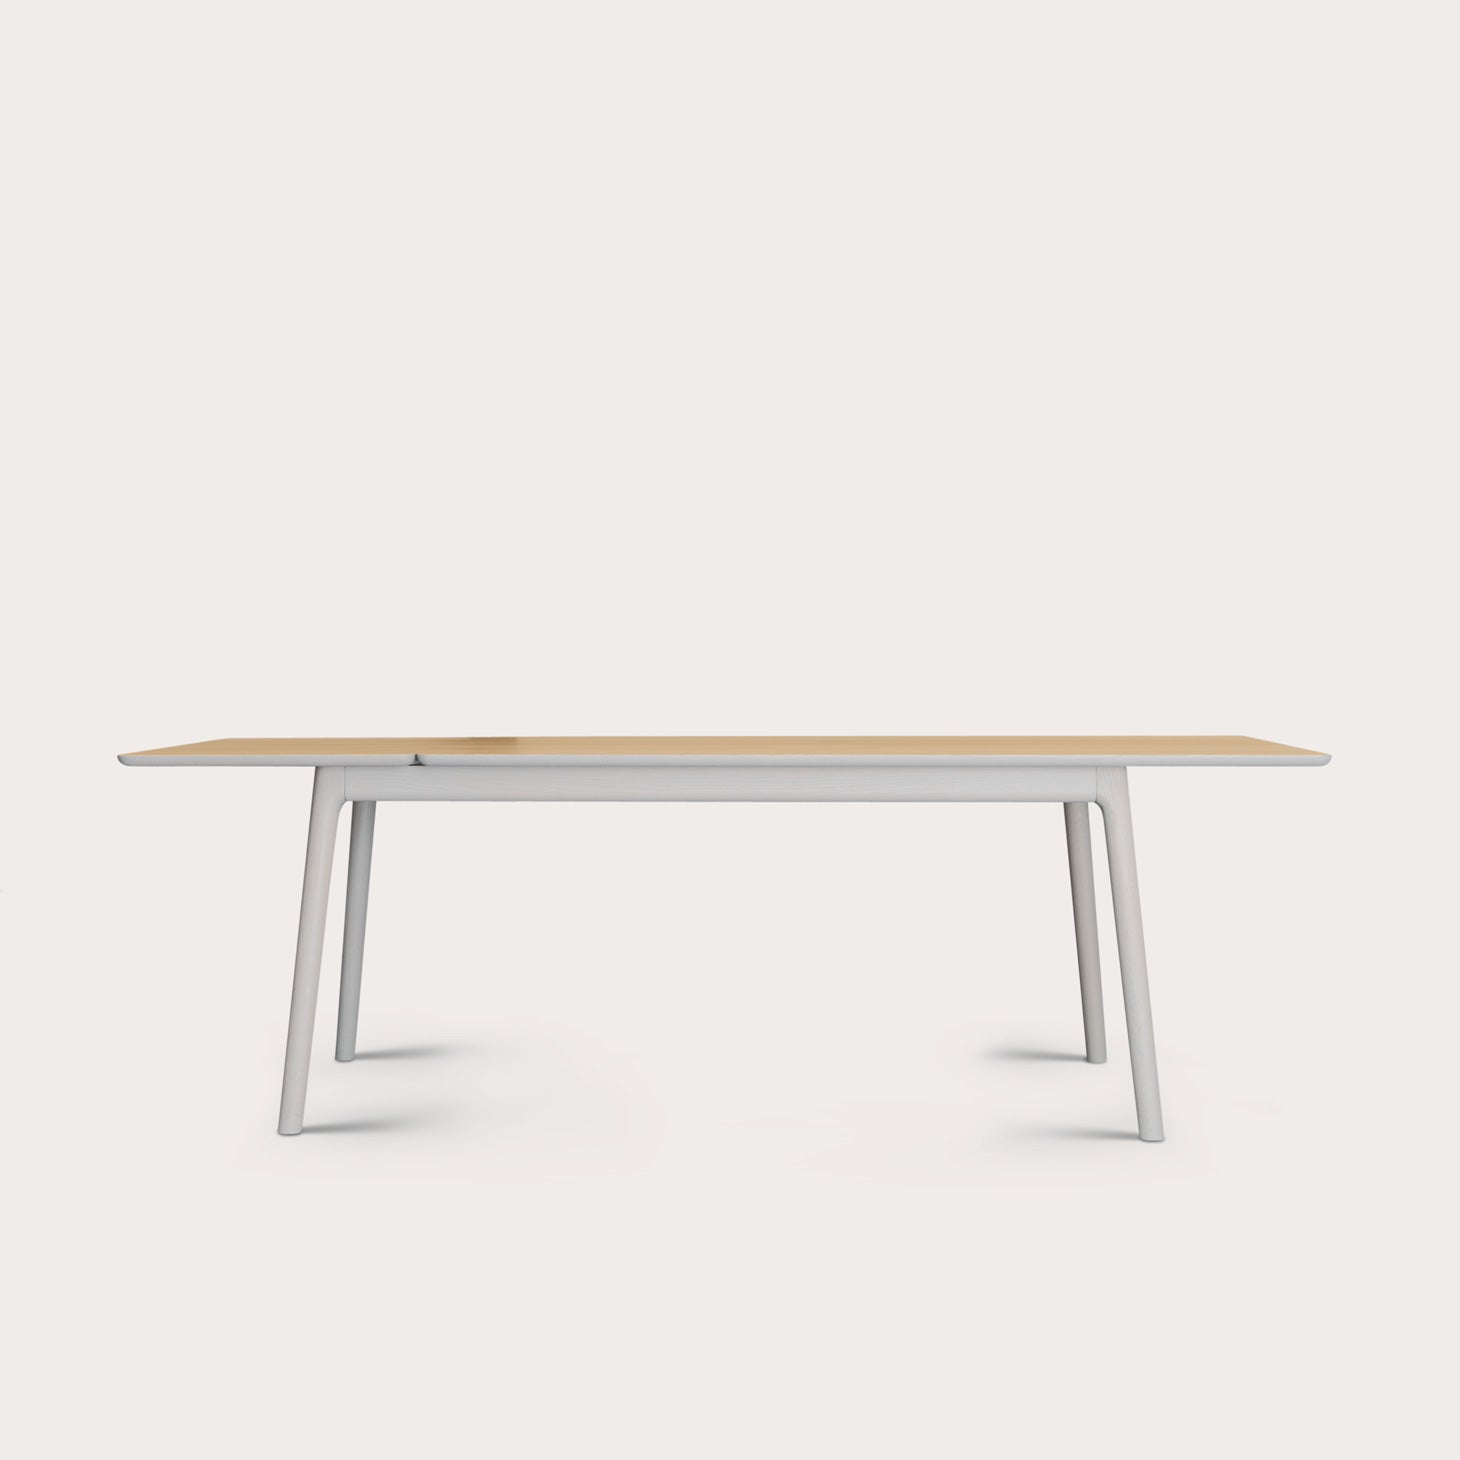 E8 Longue Table Tables Mathias Hahn Designer Furniture Sku: 006-230-10306